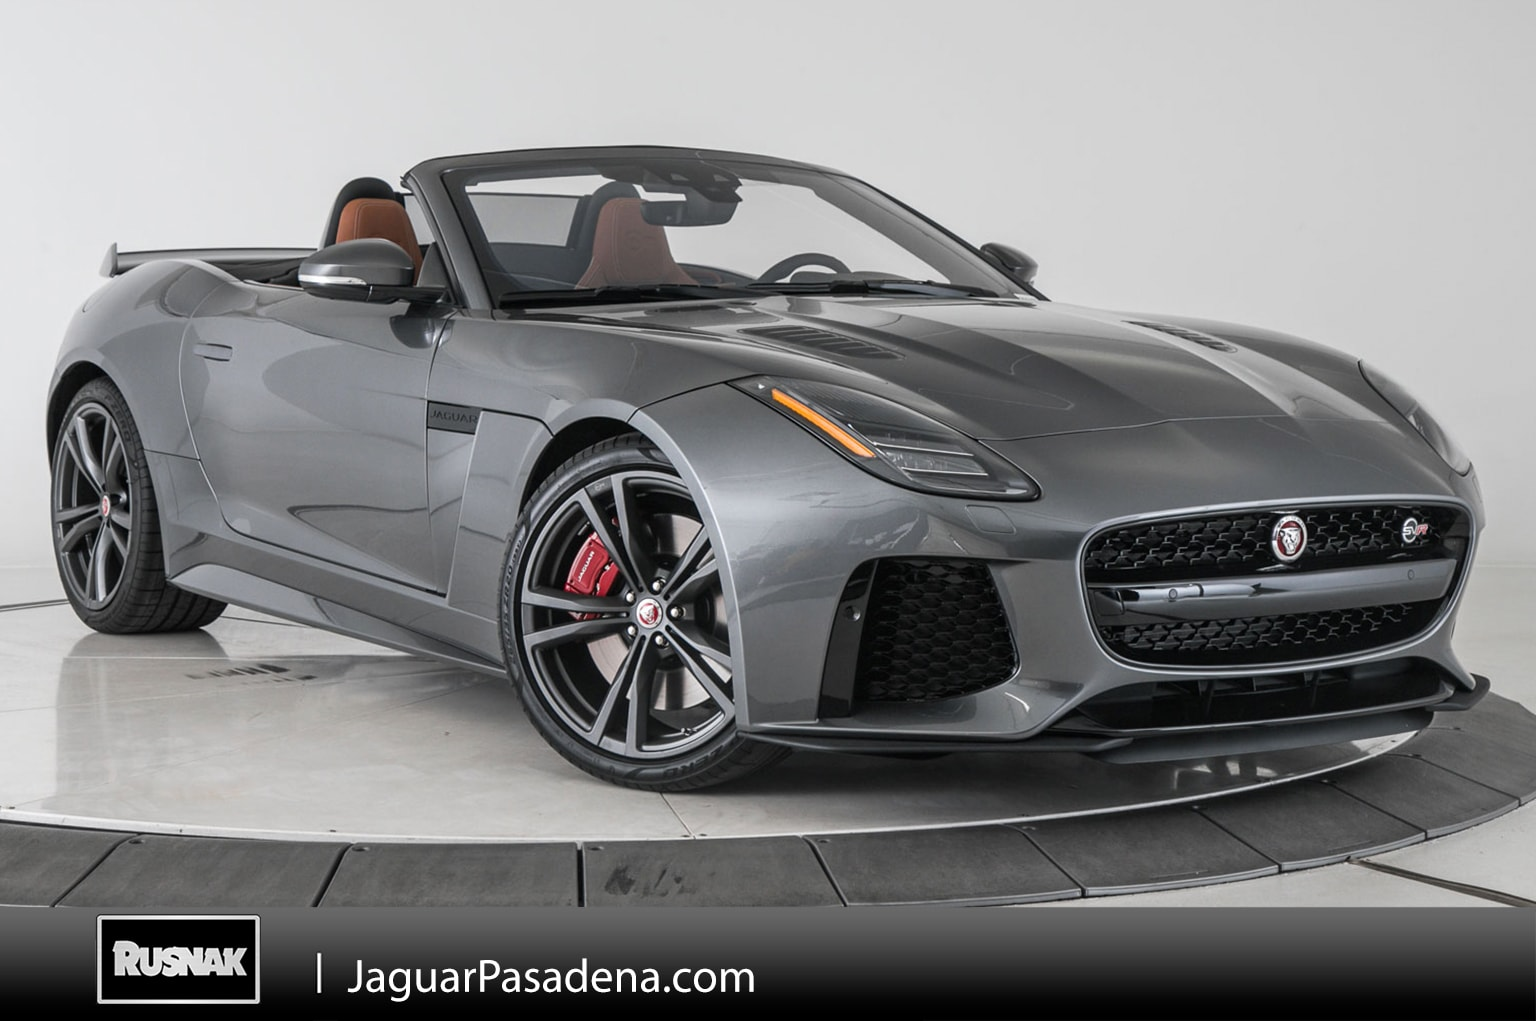 2019 Jaguar F Type For Sale In Pasadena Anaheim Hills